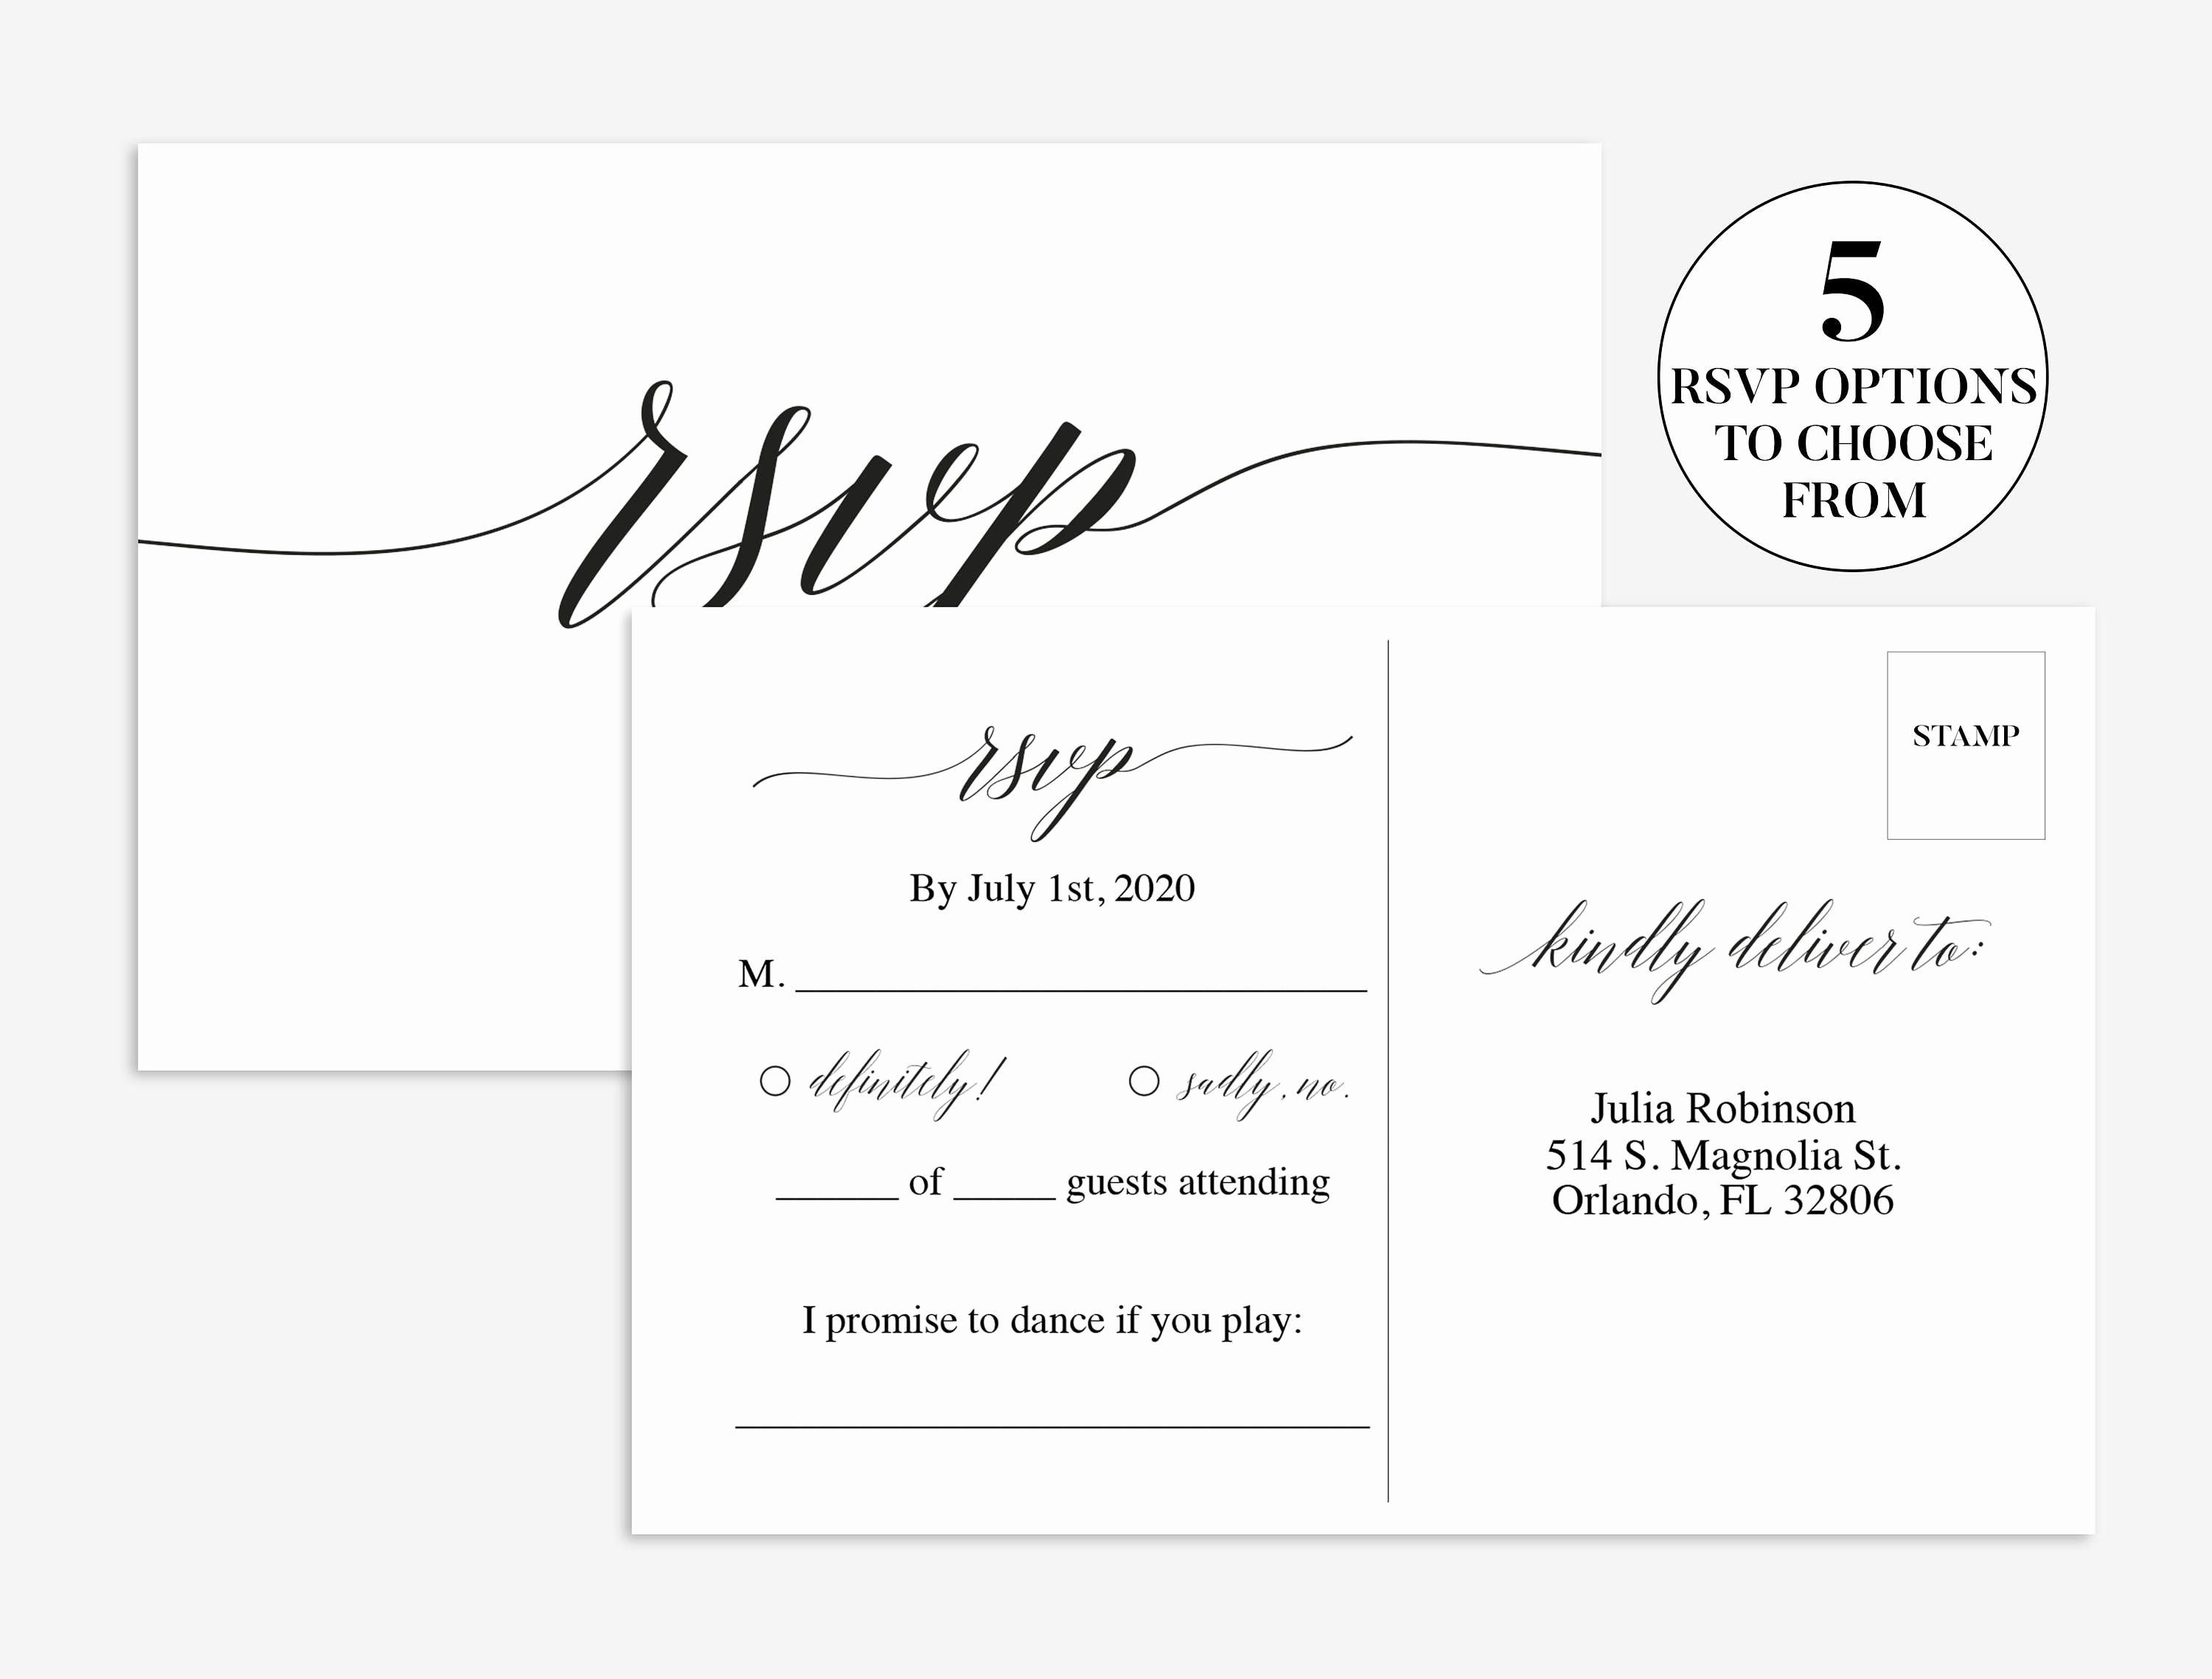 Wedding Rsvp Postcard Template Lovely Wedding Rsvp Card Wedding Rsvp Template